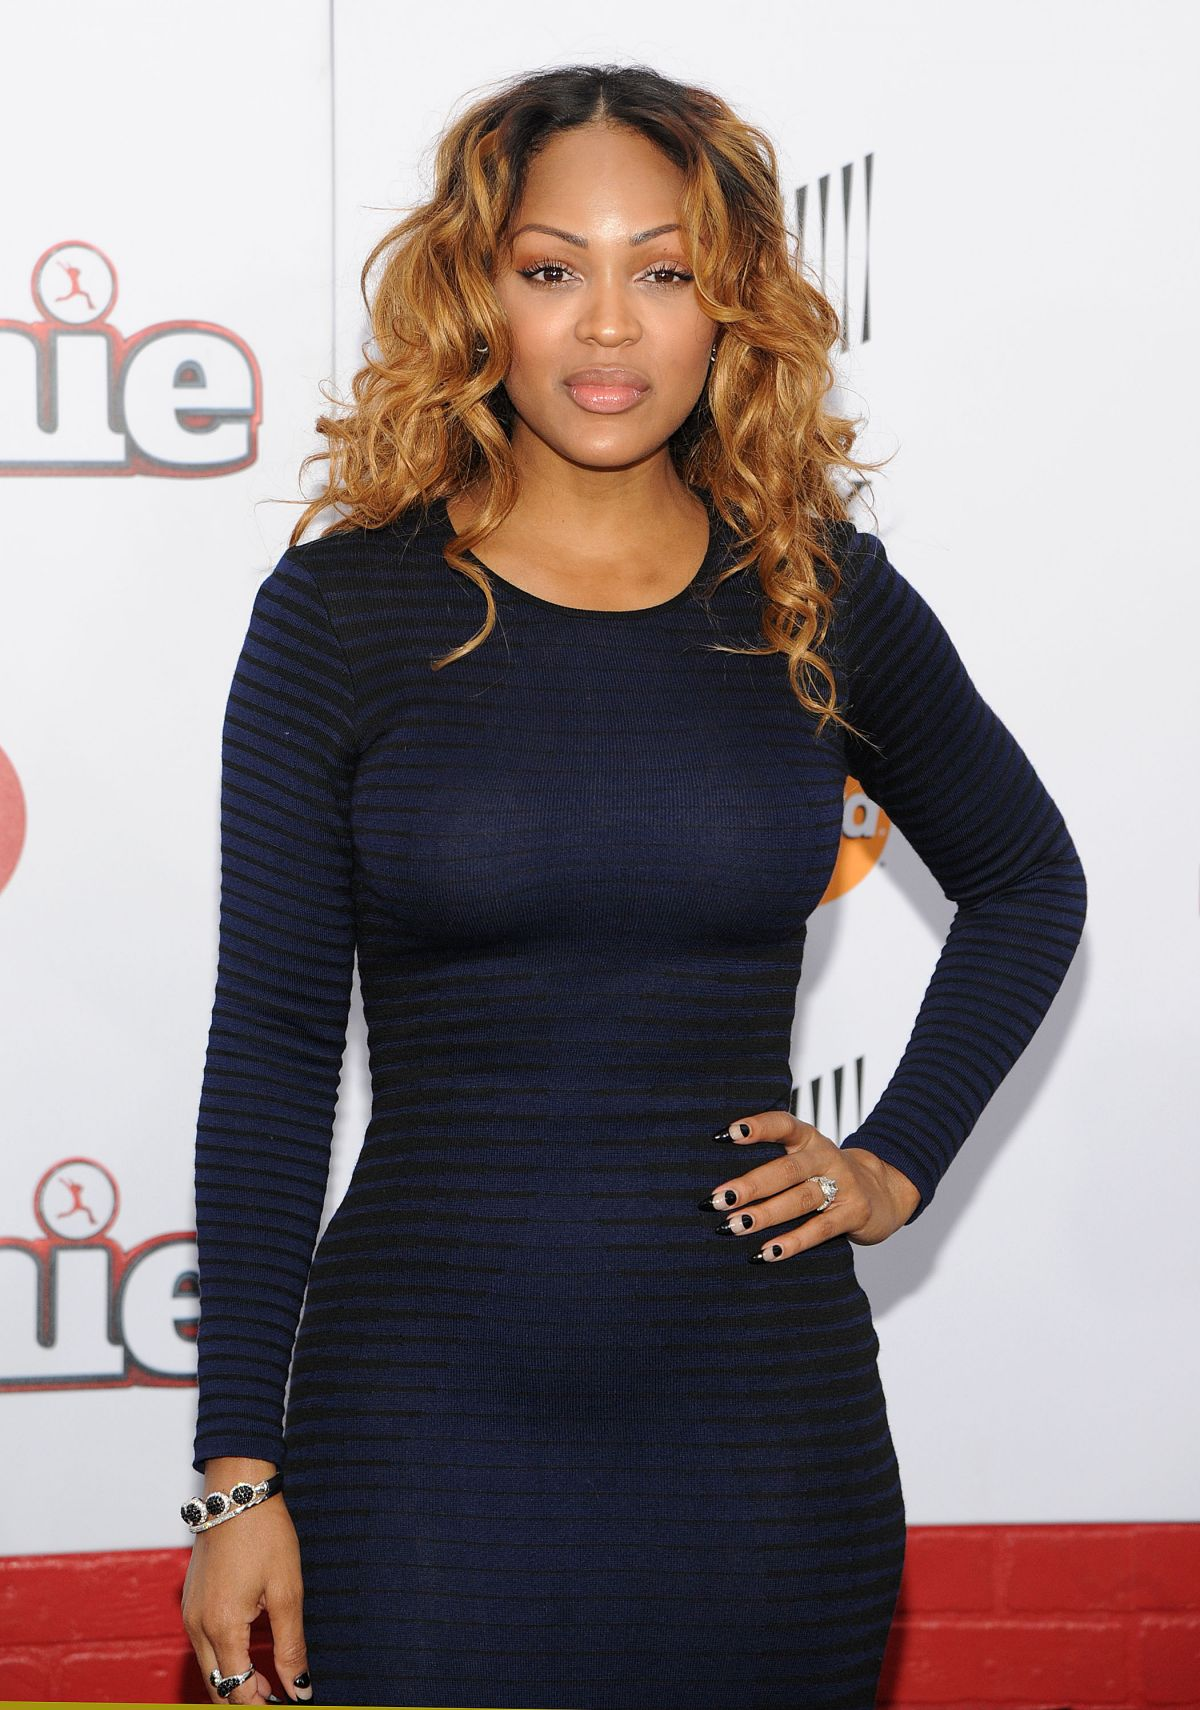 Meagan Good Archives - Page 2 of 3 - HawtCelebs - HawtCelebs